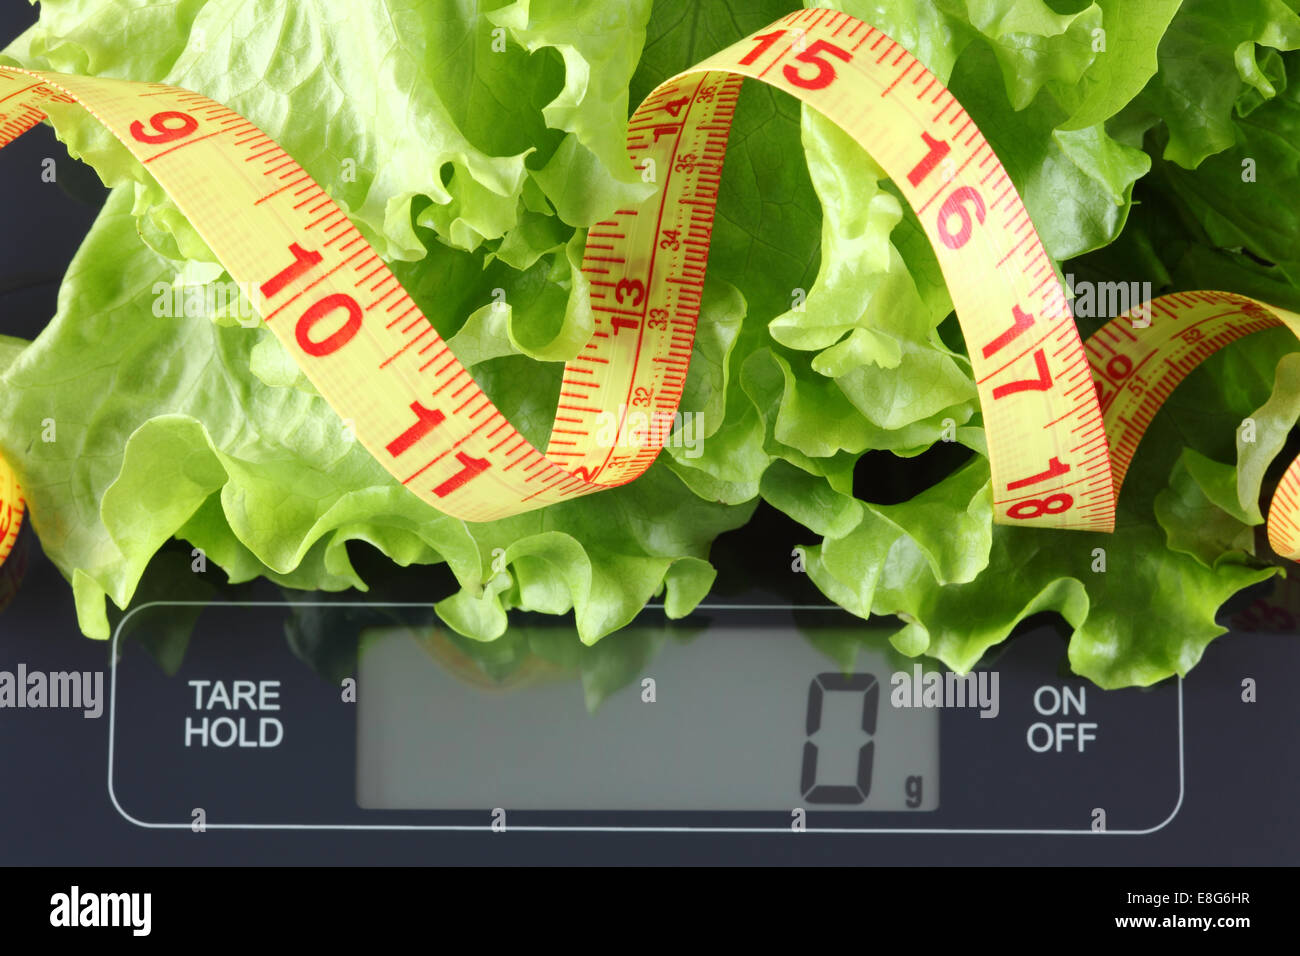 Green lettuce and tape measure in a black plate on digital scale displaying 0 gram. - Stock Image